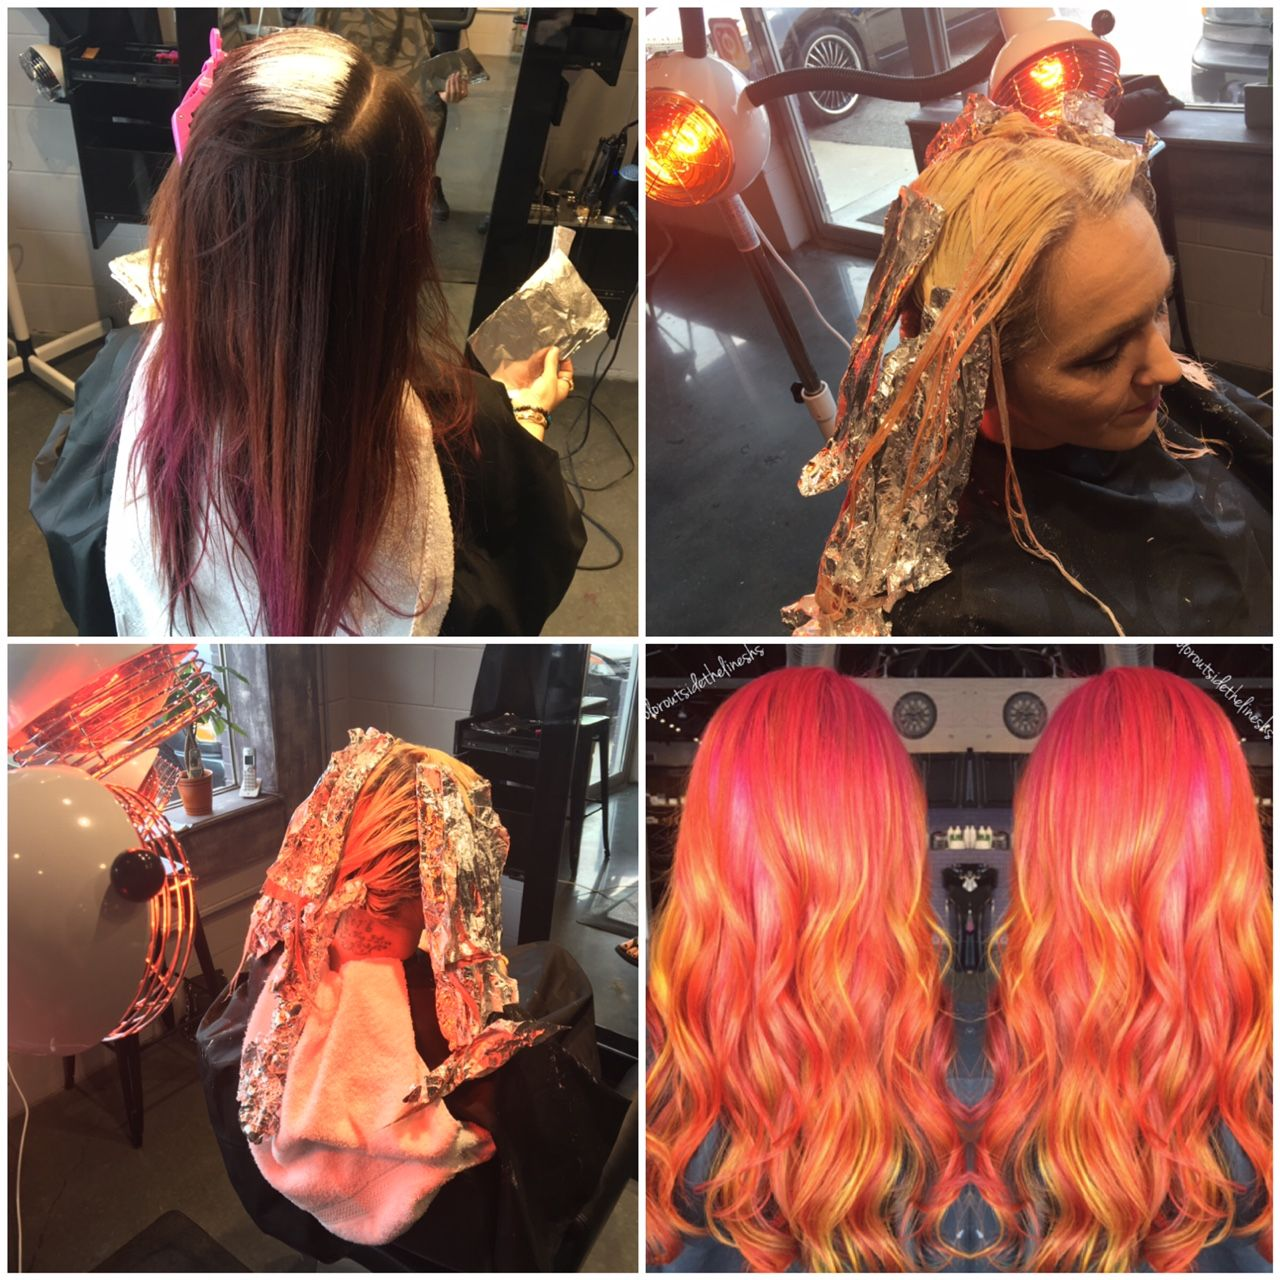 HOW TO Makeover: Dulled Fashion To Bright Sunrise - Career - Modern Salon